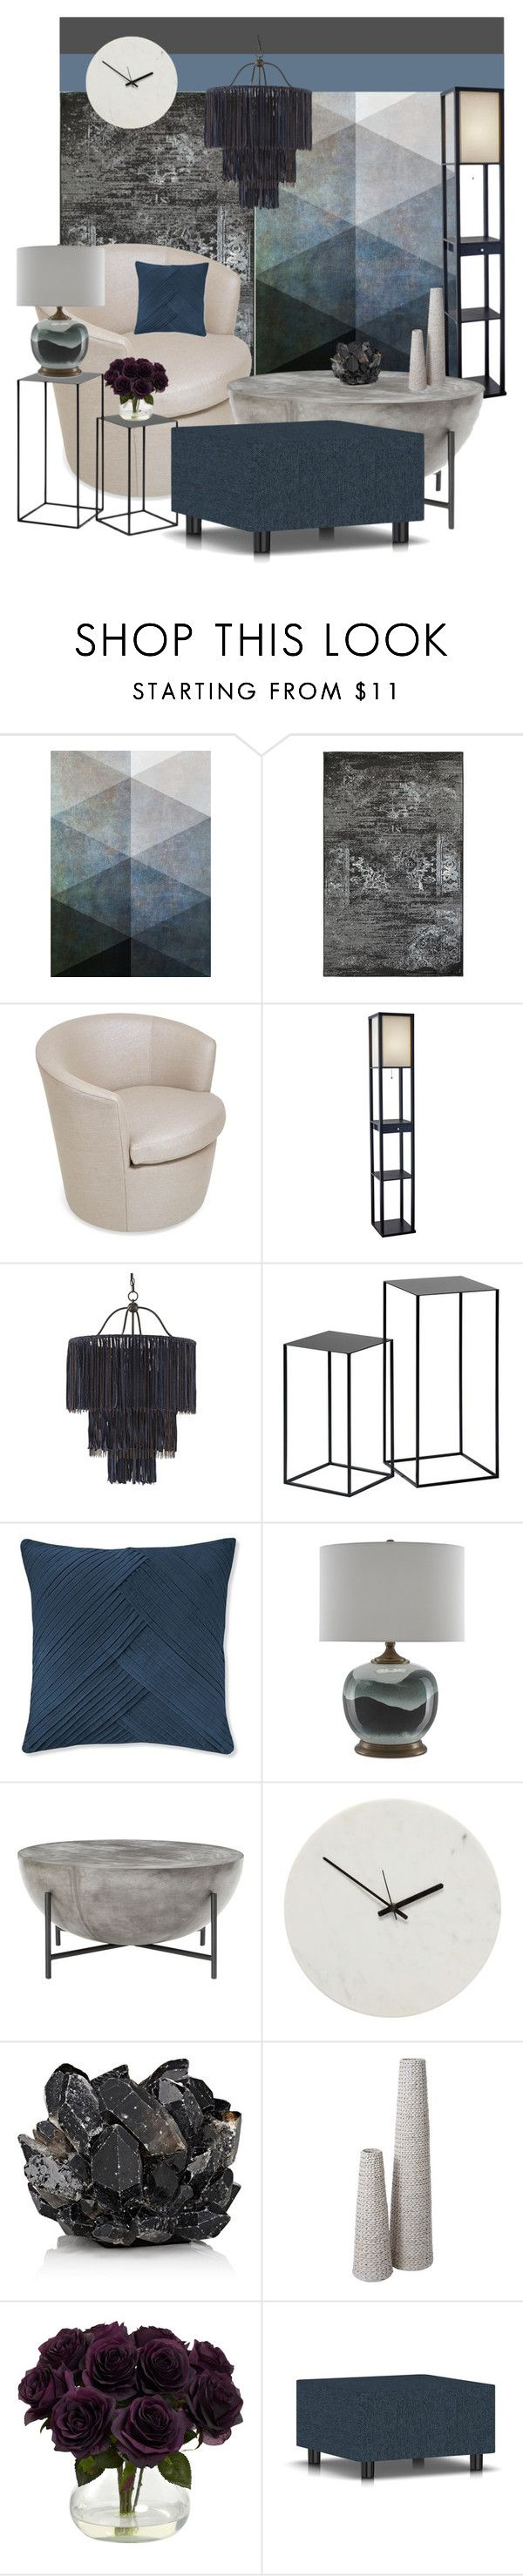 Home decor collage from january 2017 featuring currey company -  House Spaces By Tes Gray Liked On Polyvore Featuring Interior Interiors Interior Design Home Home Decor Interior Decorating L R Resources Currey